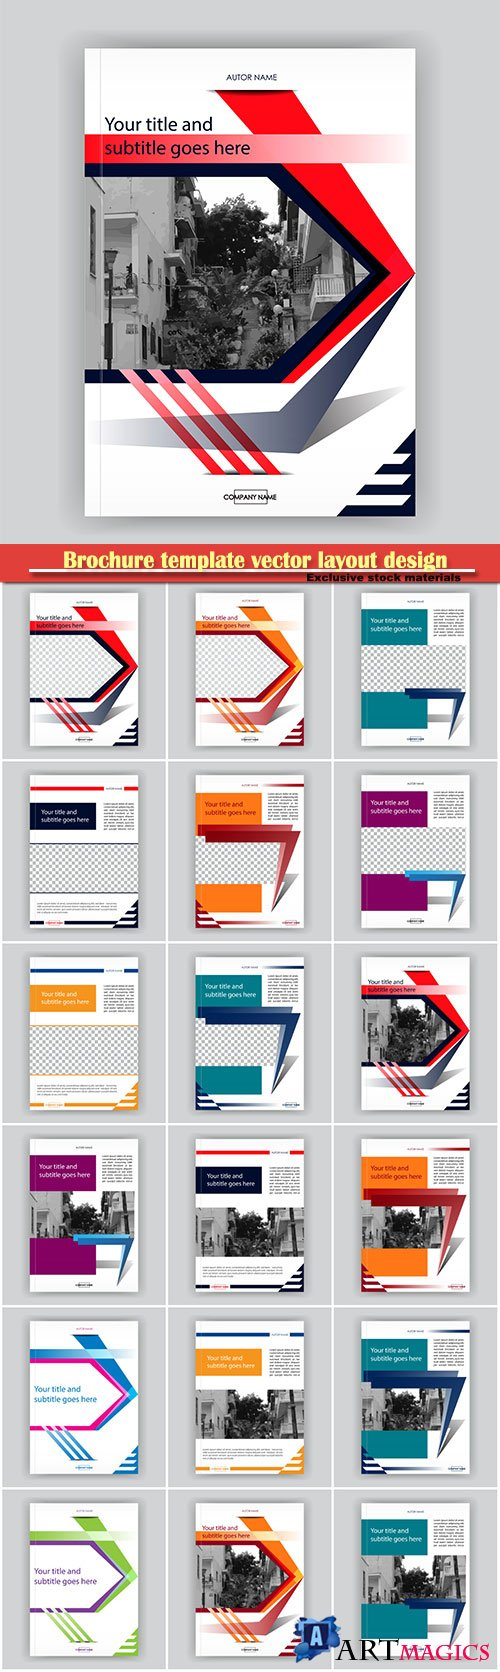 Brochure template vector layout design, corporate business annual report, magazine, flyer mockup # 116